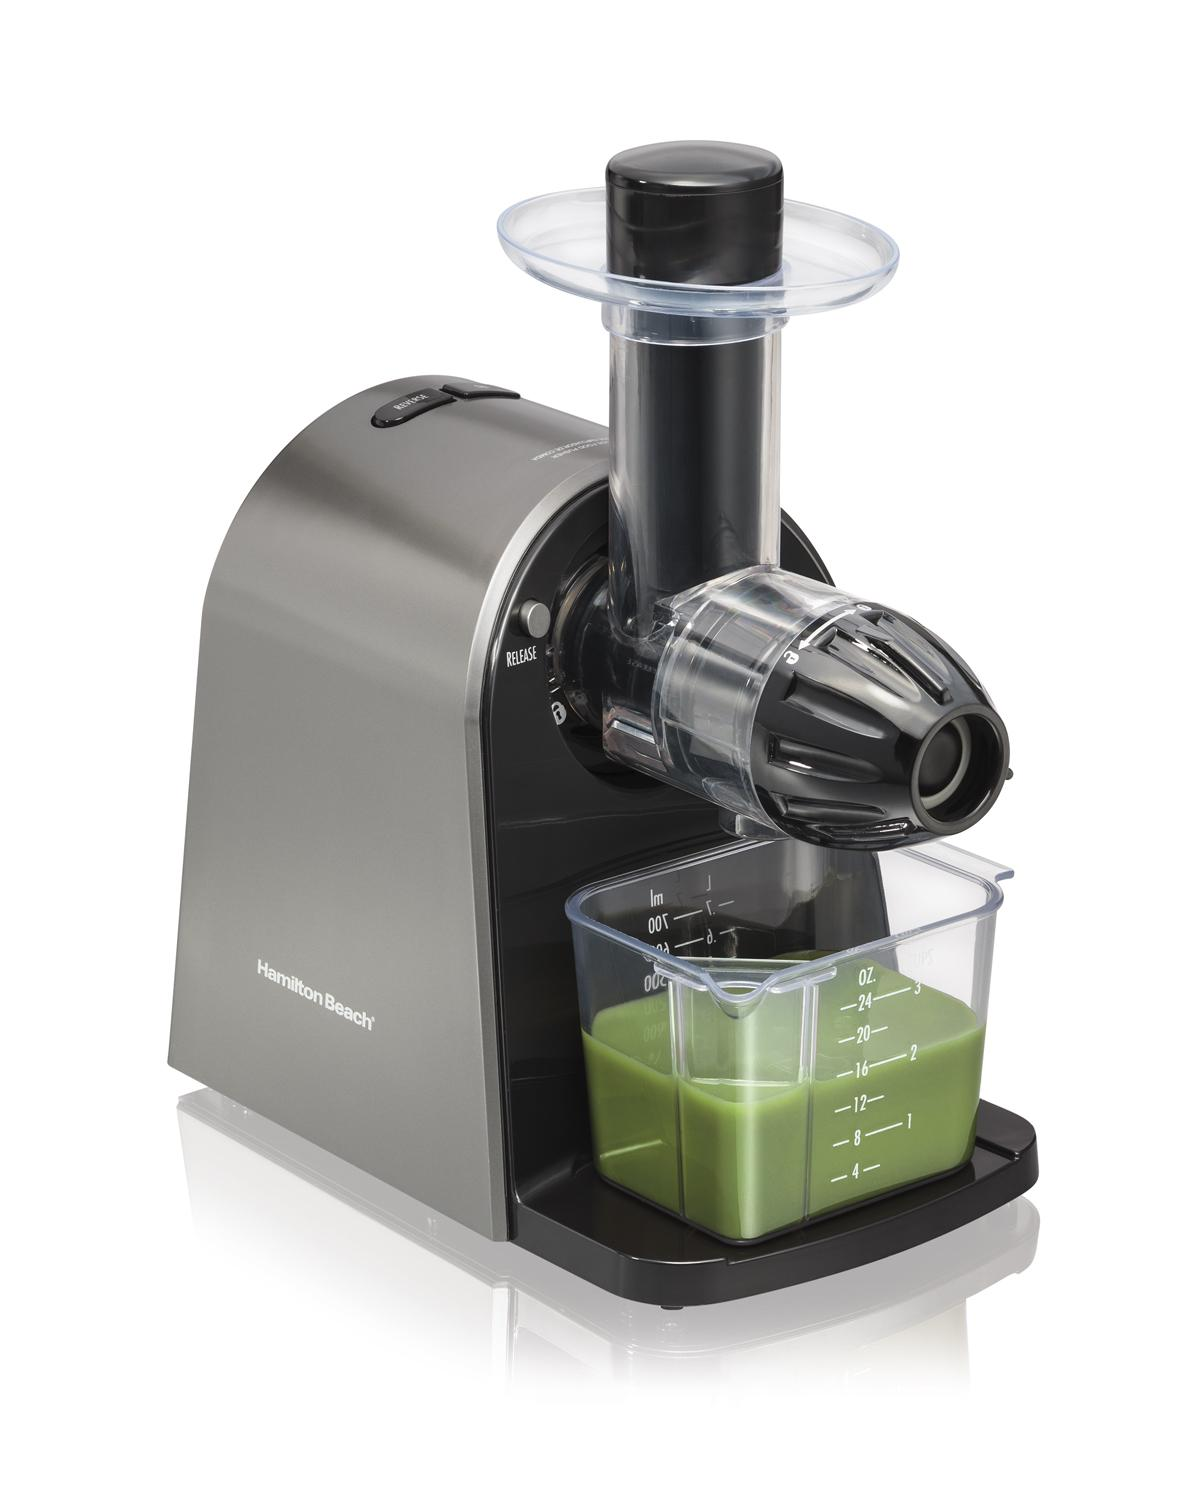 Slow Juicer Oppskrifter : juicer breville commercial cuisinart omega extractor slow juicers electric vegetable masticating